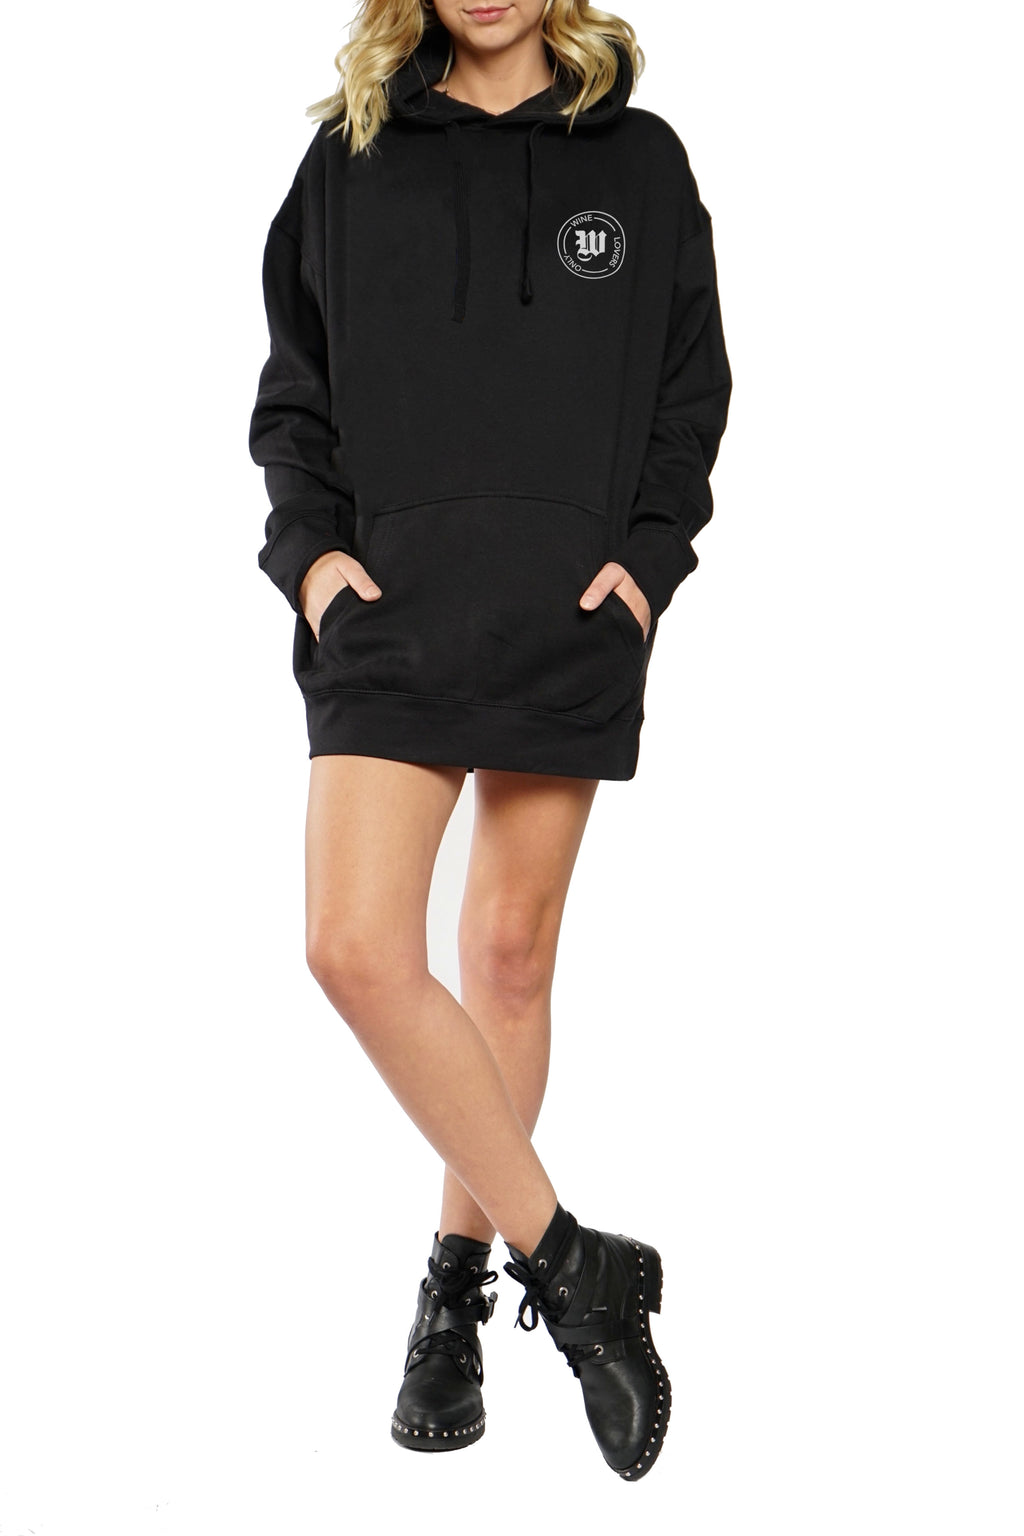 OVERSIZED HOODIE - Wine Lover's Only